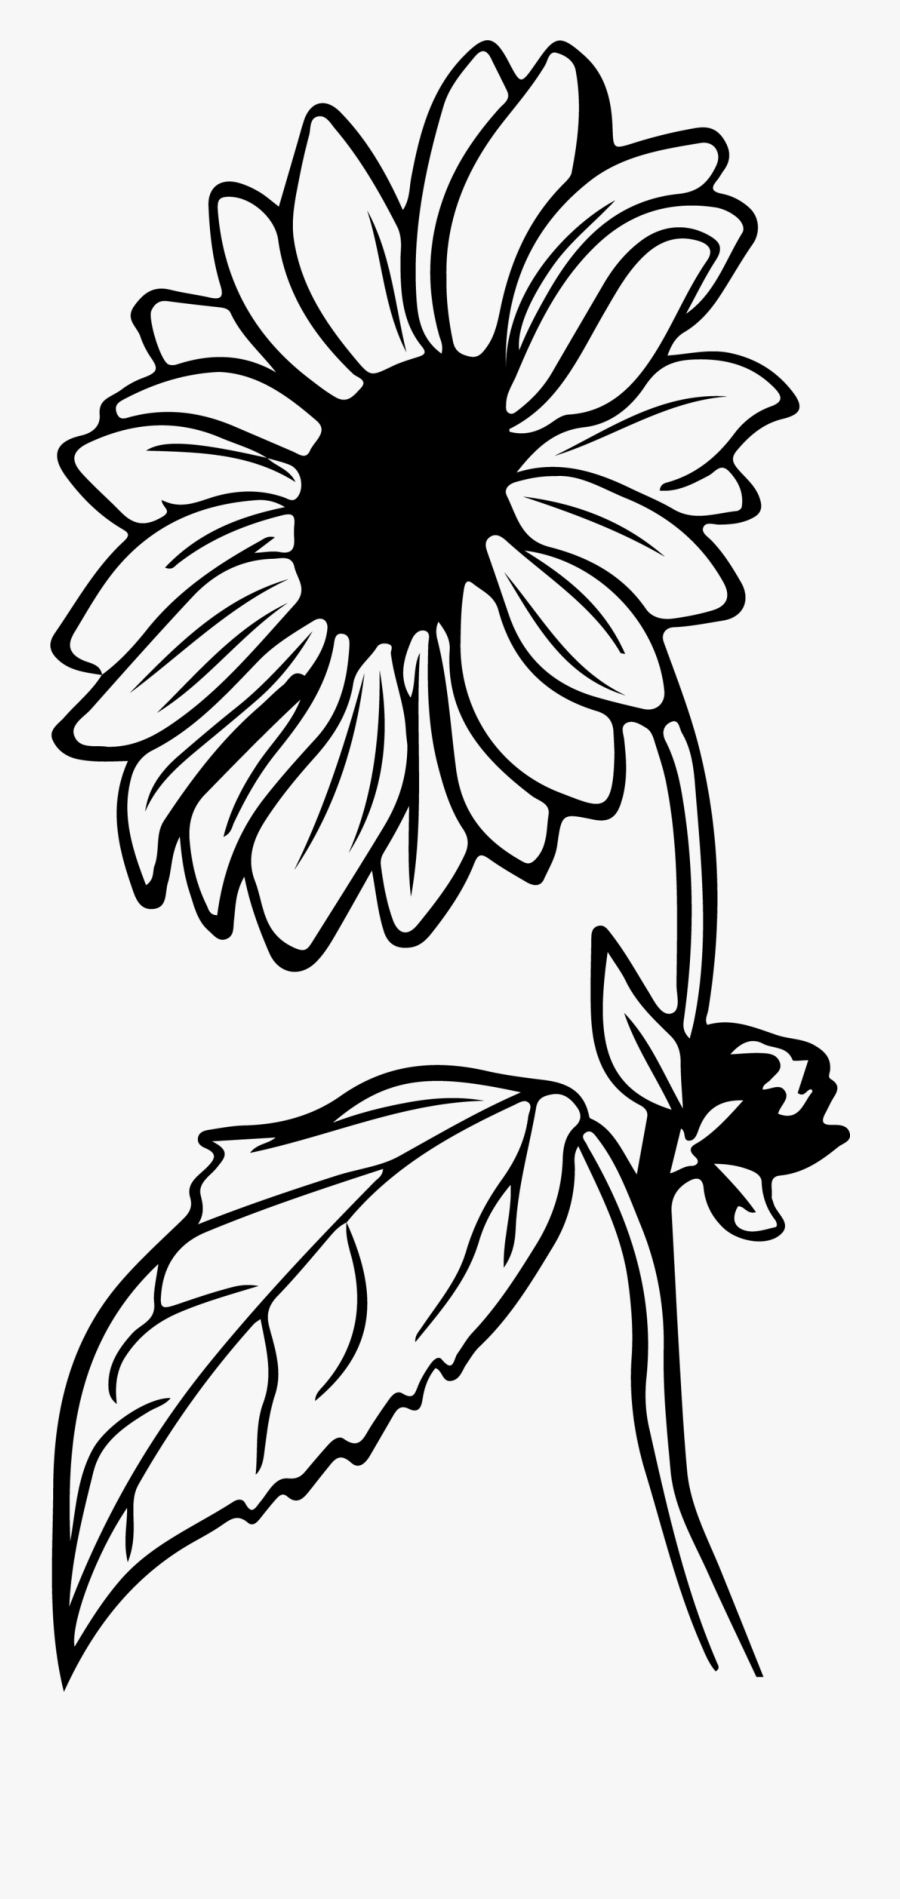 22++ Half sunflower clipart black and white ideas in 2021